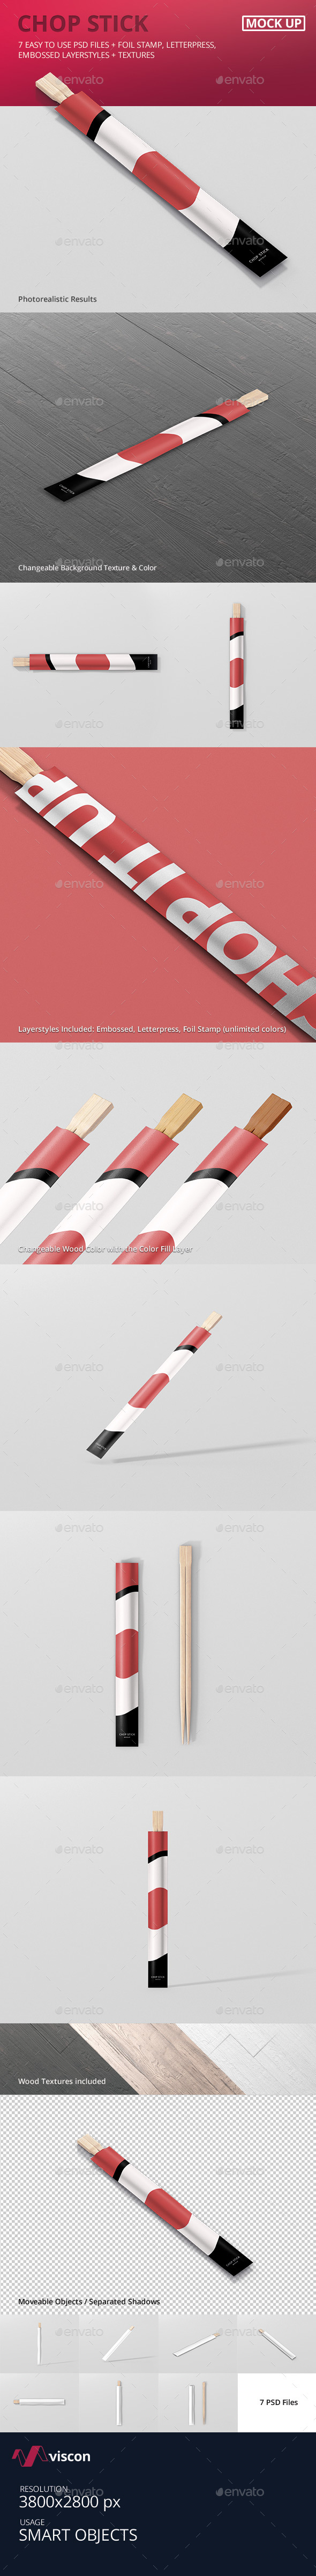 Chopsticks Mockup - Food and Drink Packaging